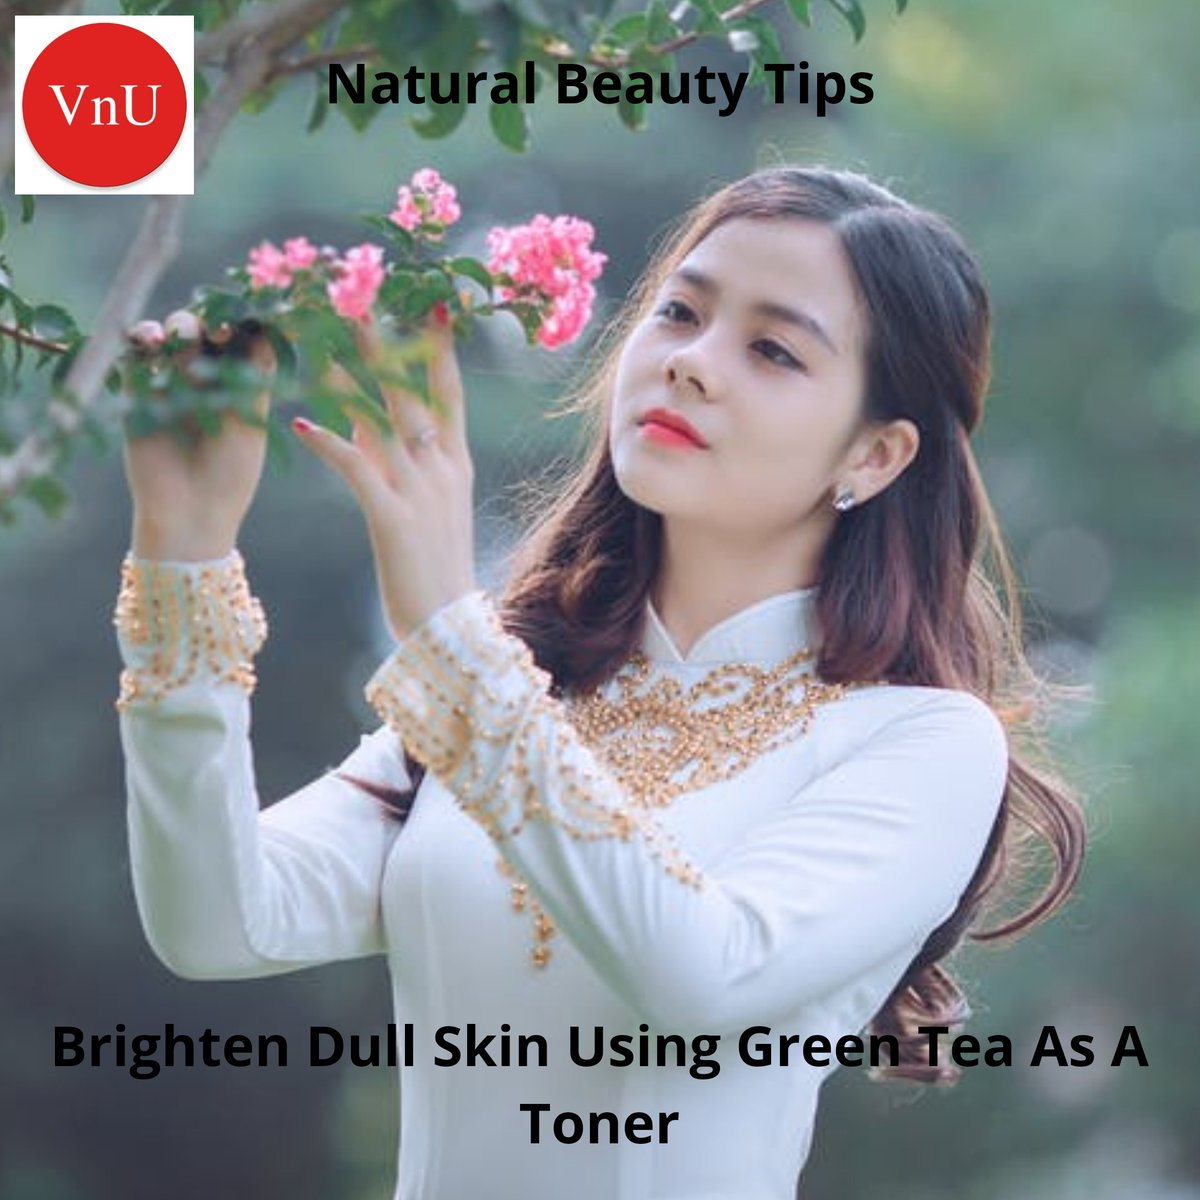 #naturalbeauty #beautytips #bebeautiful #beautiful #organic #fashion #girl #vnufashion #love #onlineshopping #fashiontips